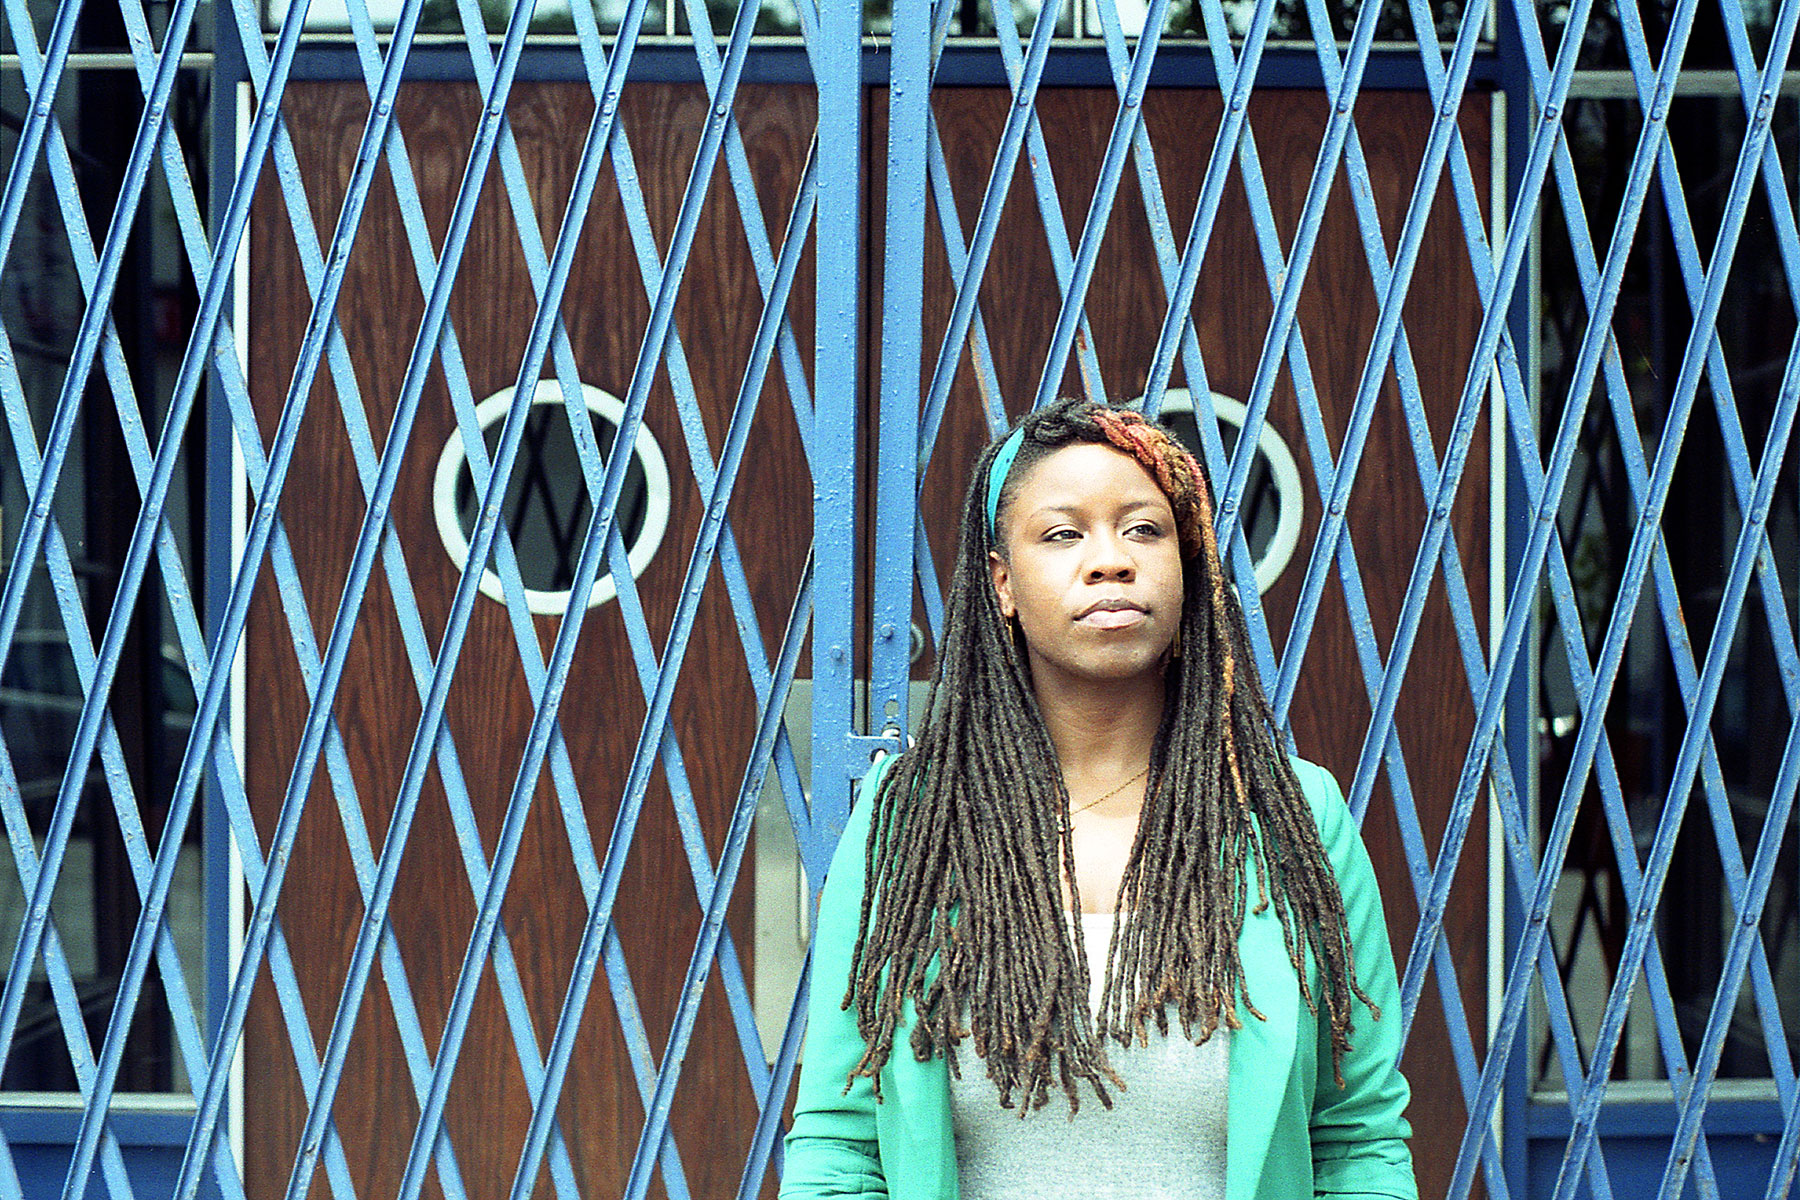 Poet Aricka Foreman. Photograph courtesy of the poet.